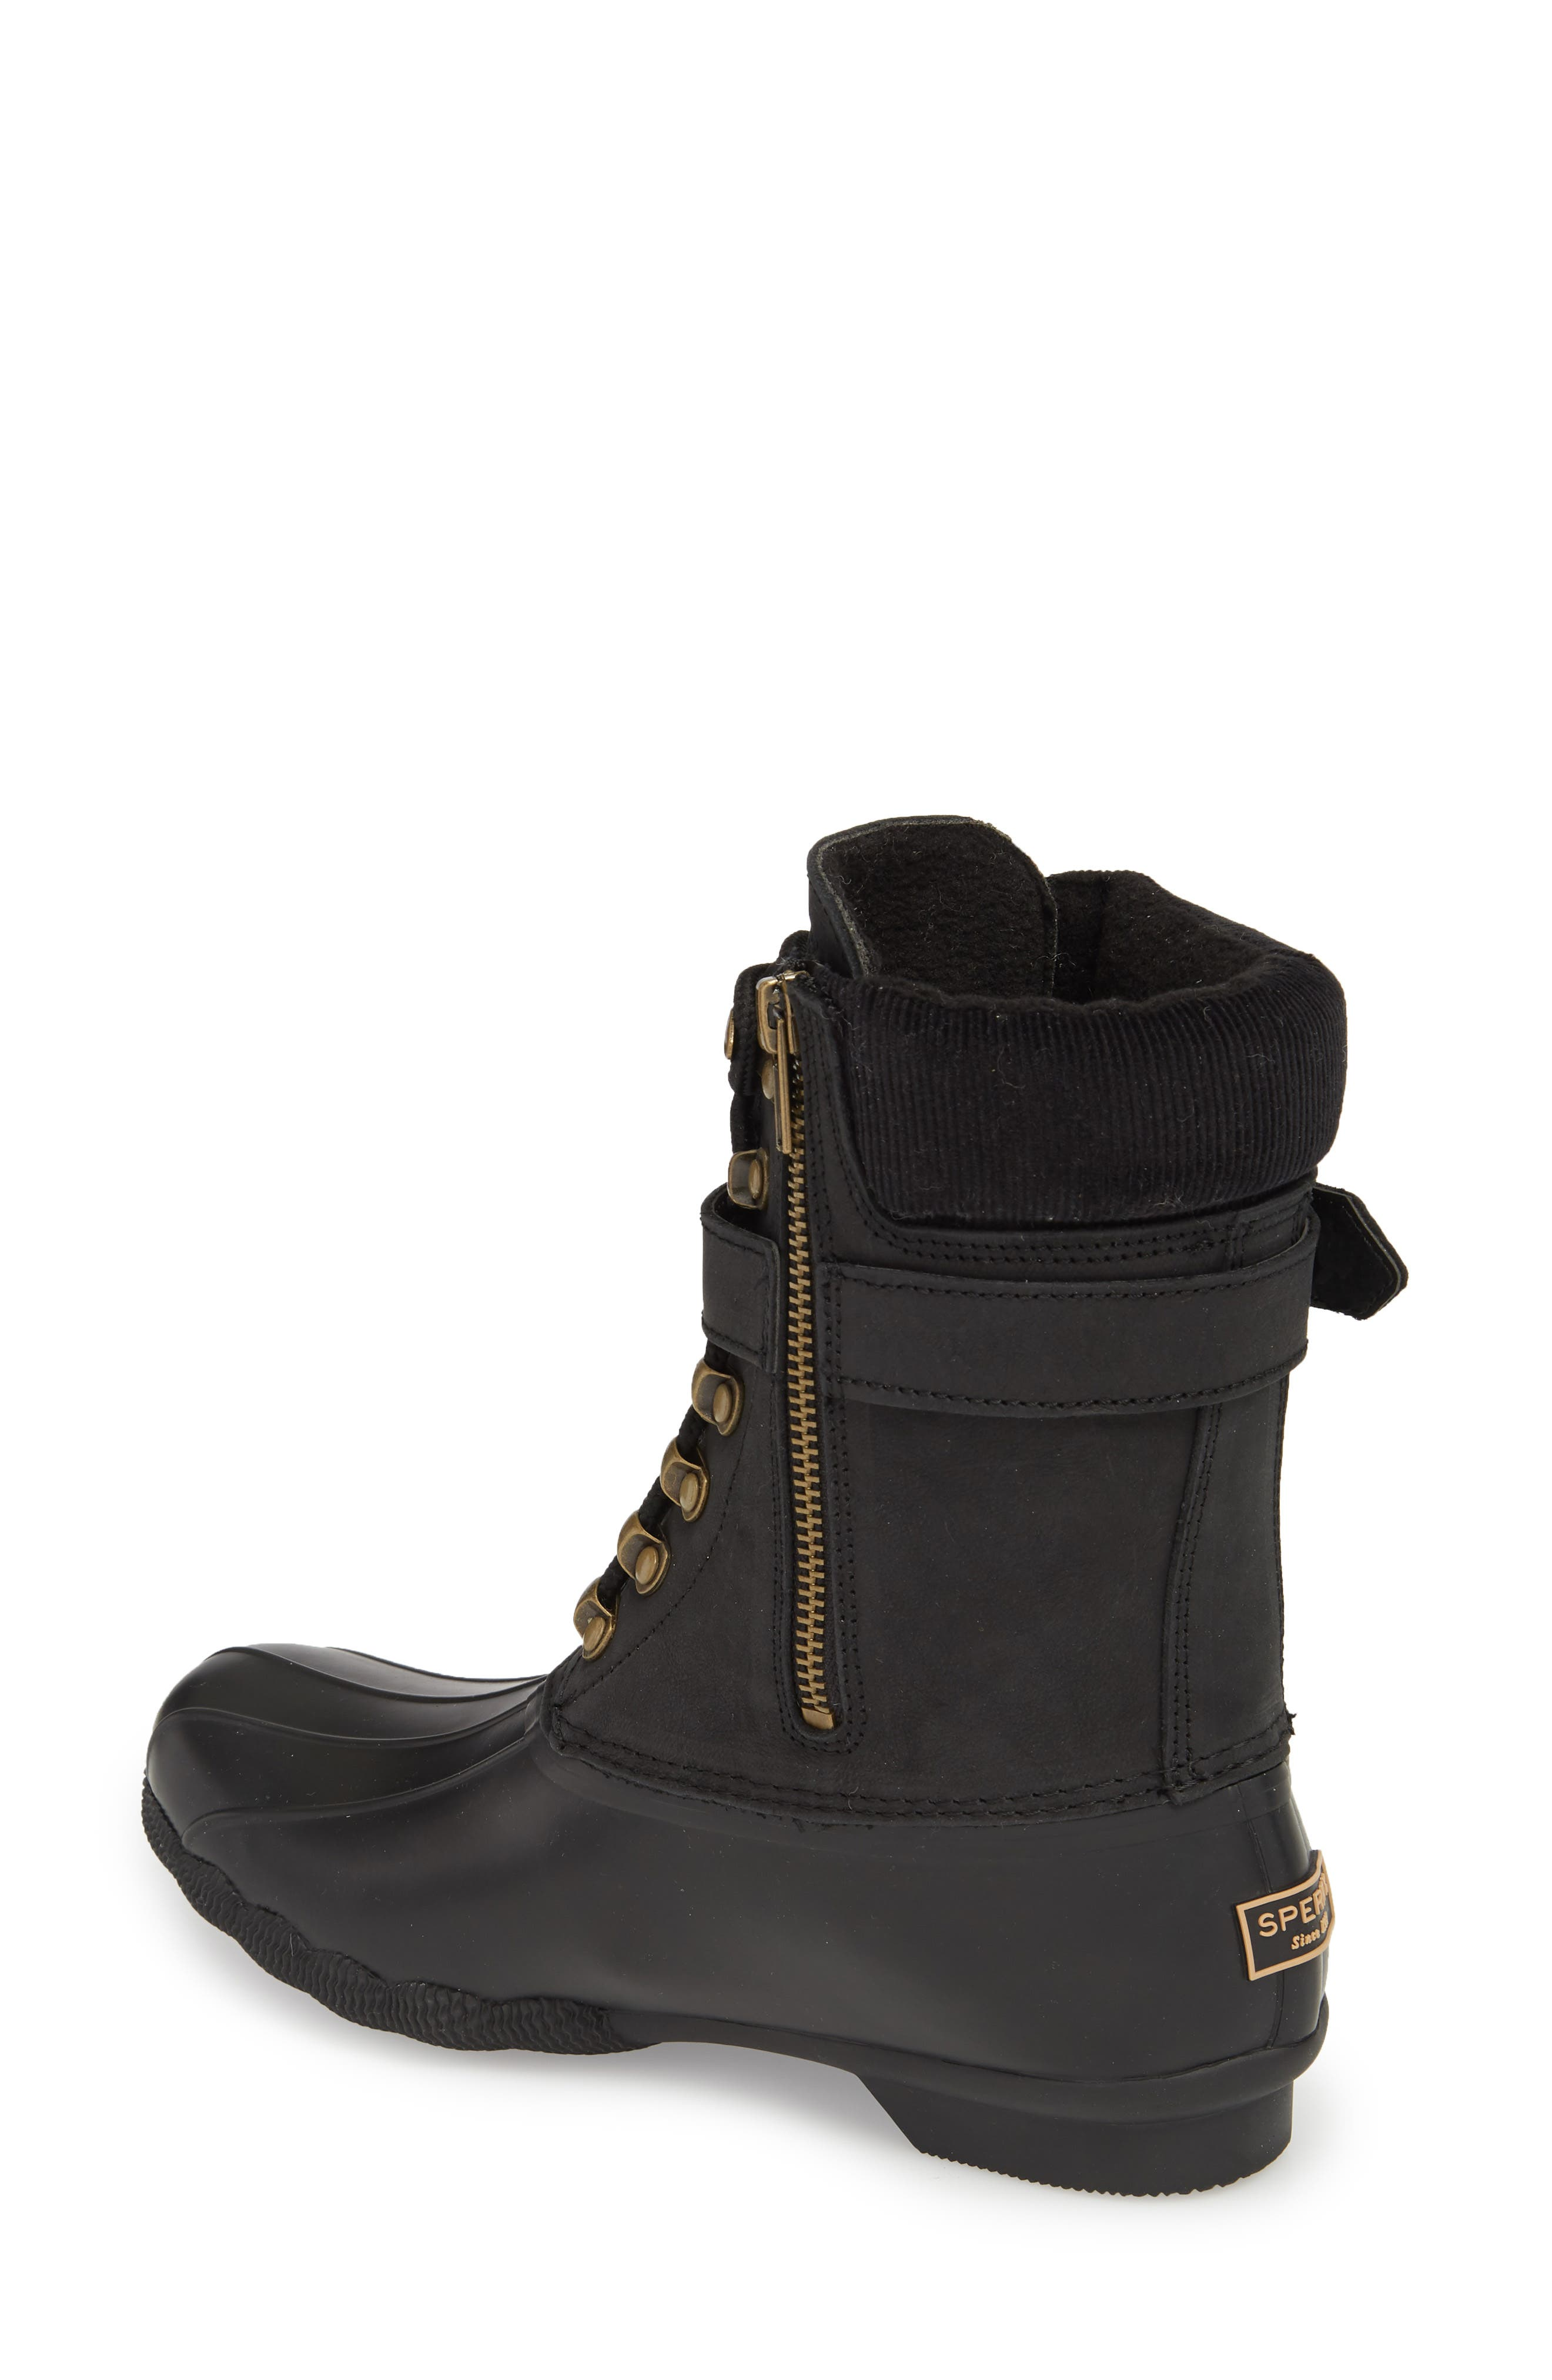 Shearwater Water-Resistant Genuine Shearling Lined Boot,                             Alternate thumbnail 6, color,